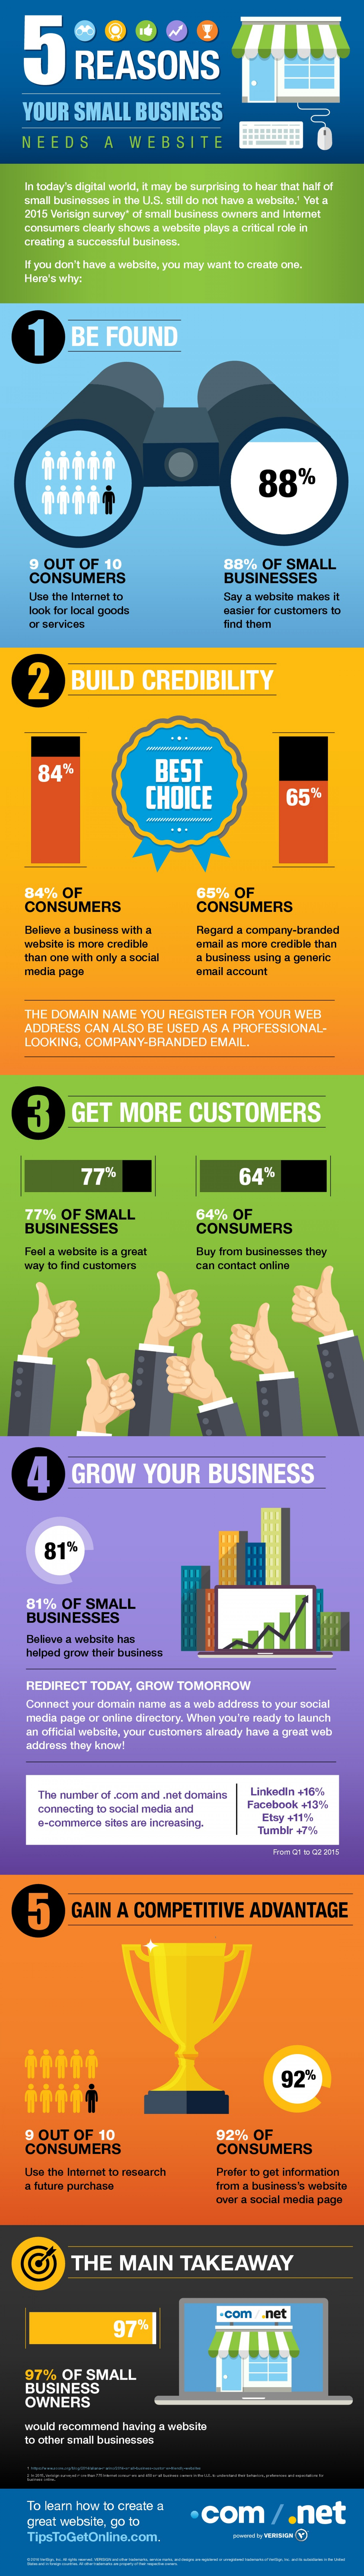 5 Reasons Every Small Business Needs a Website